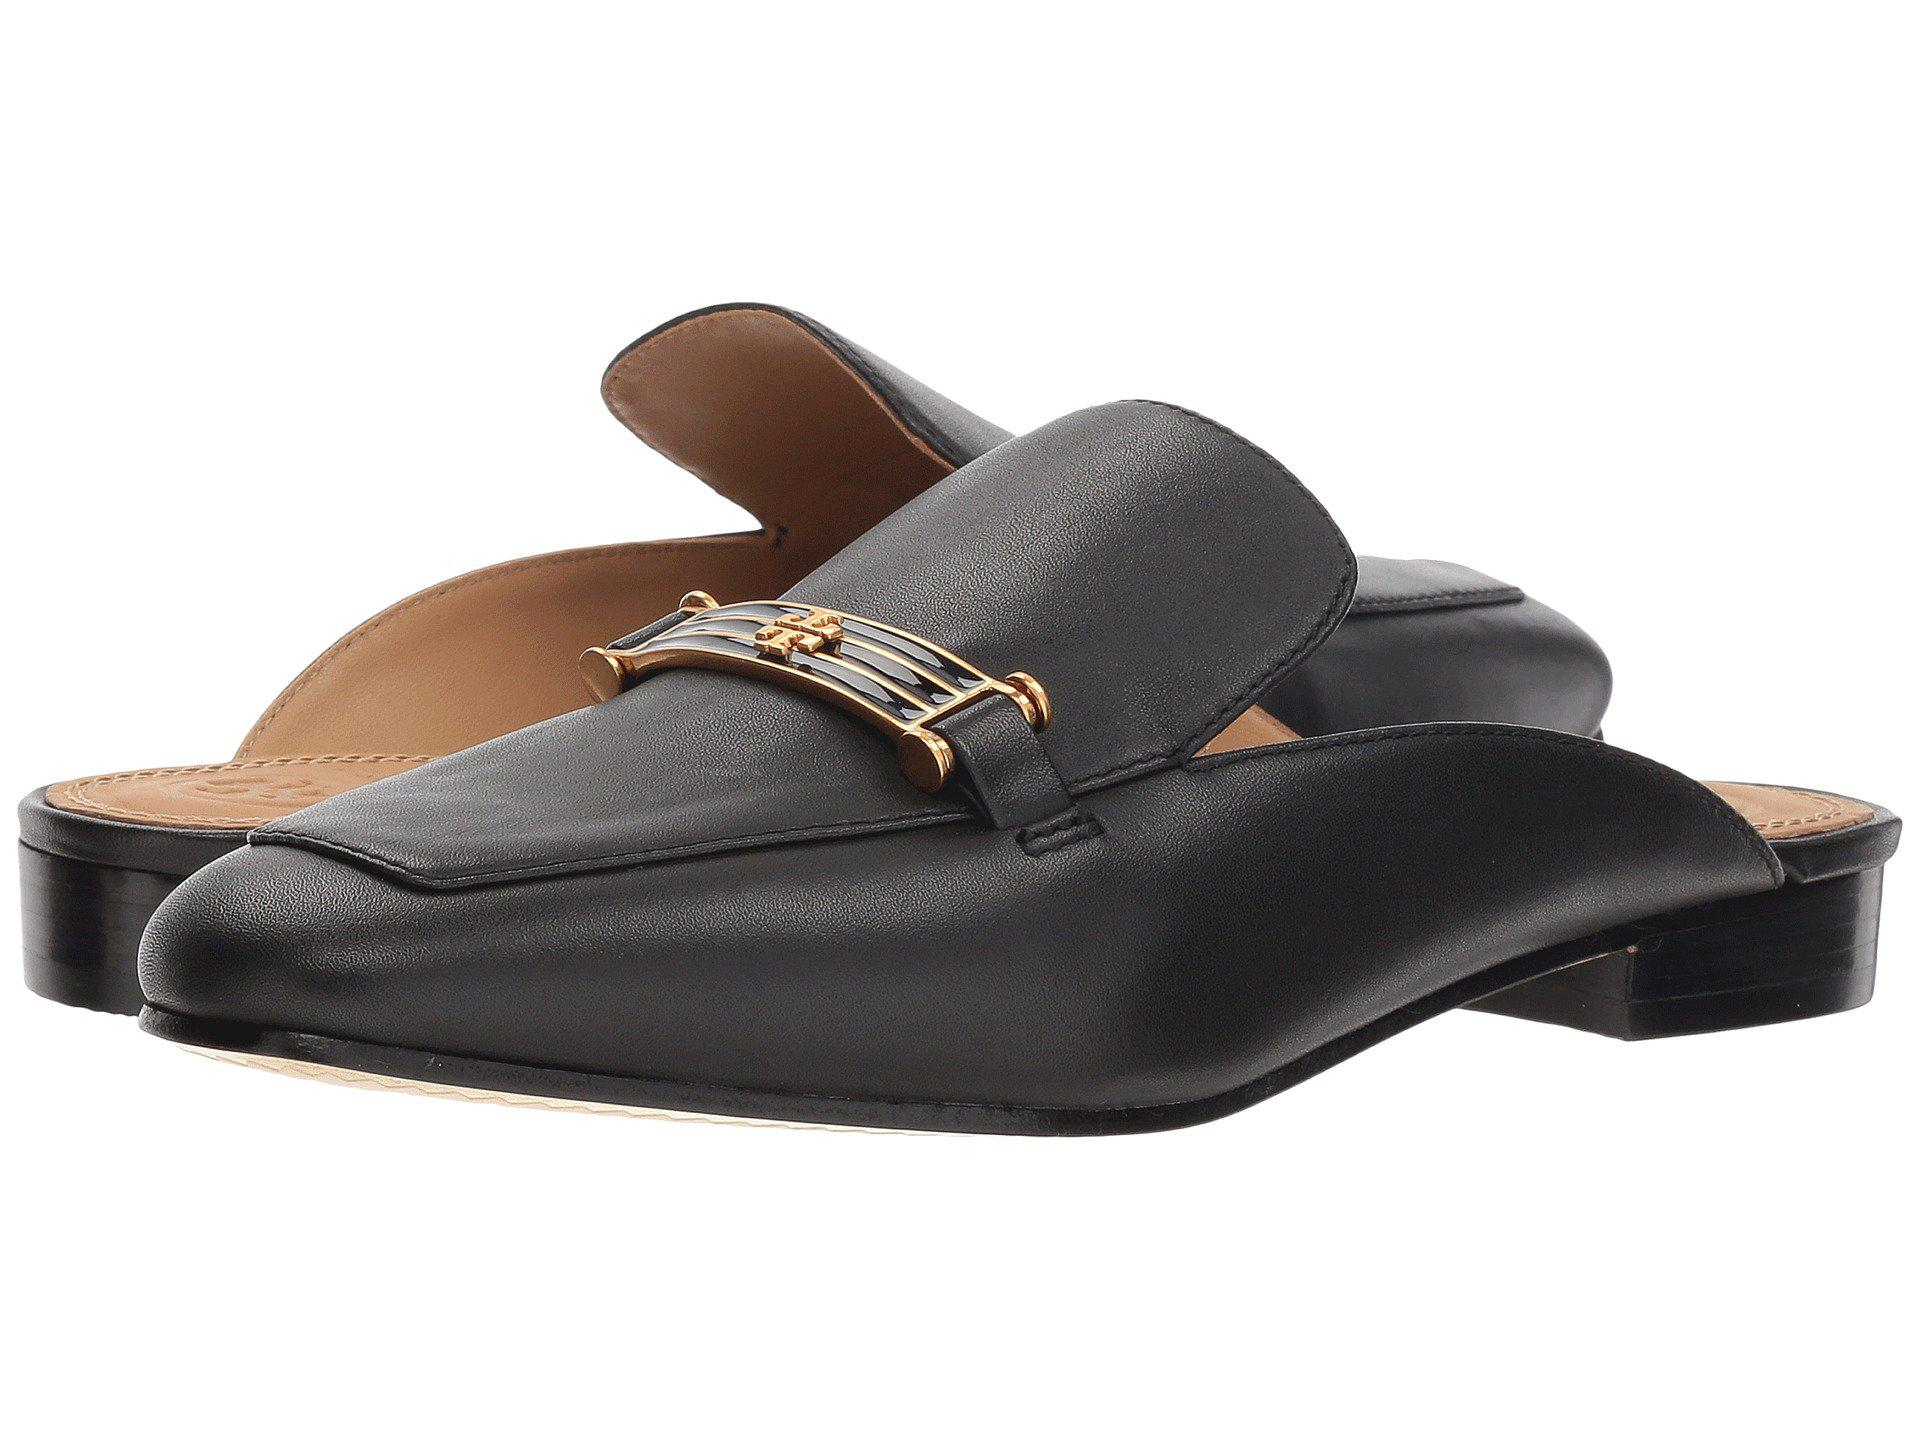 29cc2451395 Lyst - Tory Burch Amelia Backless Loafer (perfect Black) Women s ...